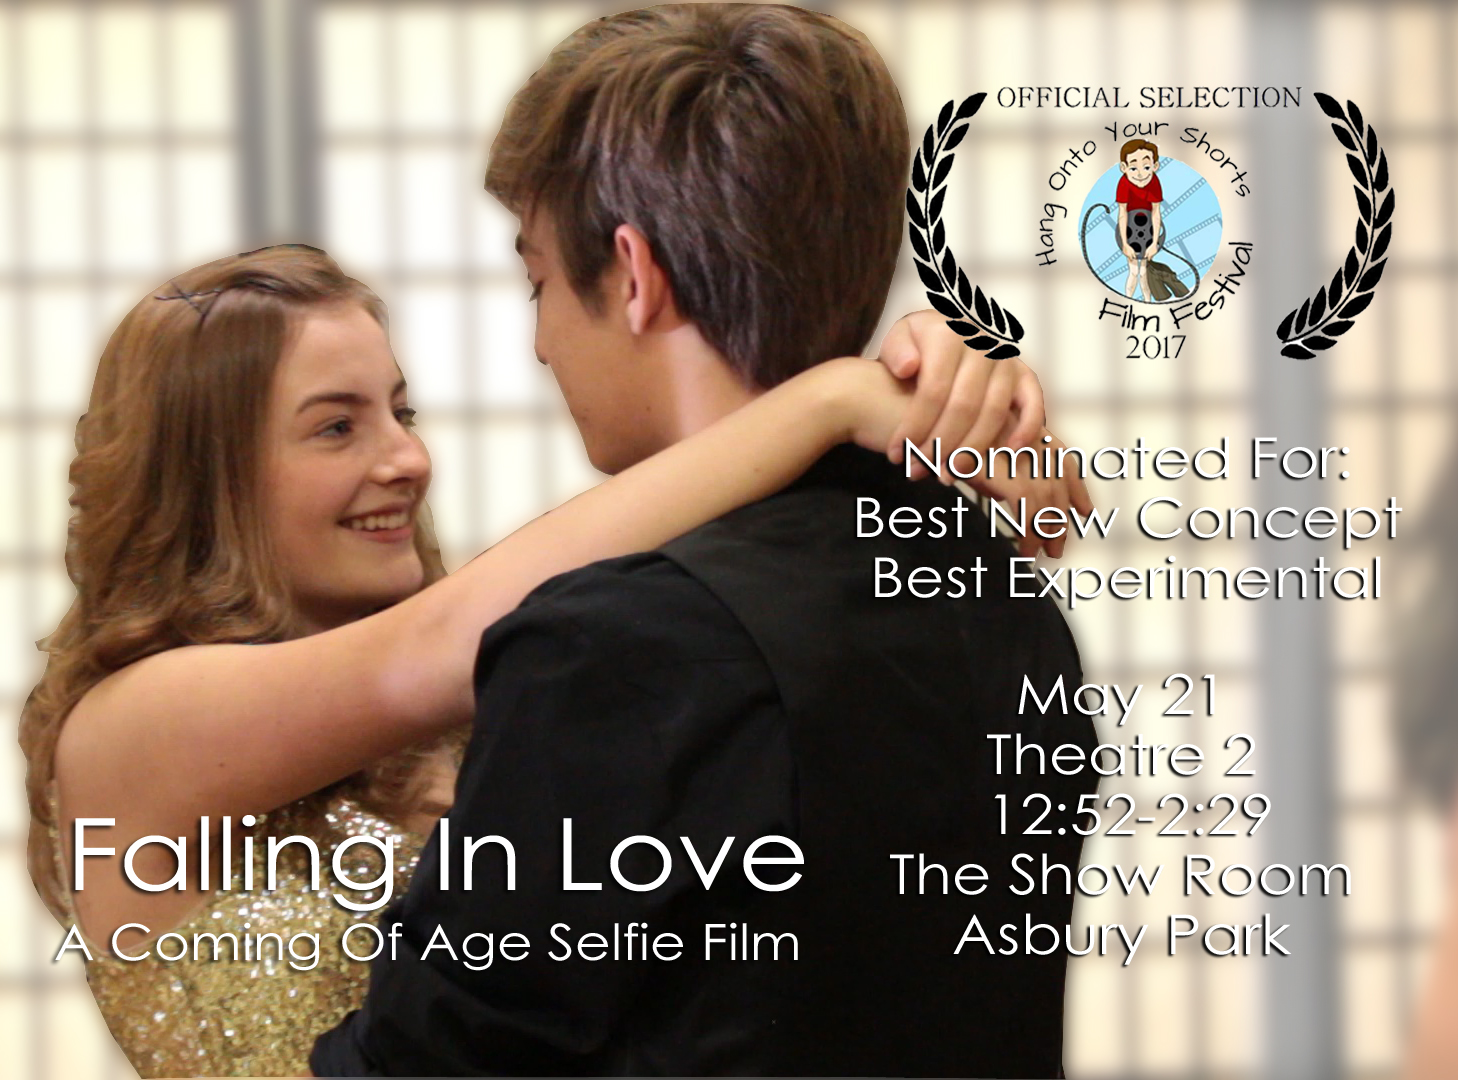 Falling In Love, A Coming Of Age Selfie Film